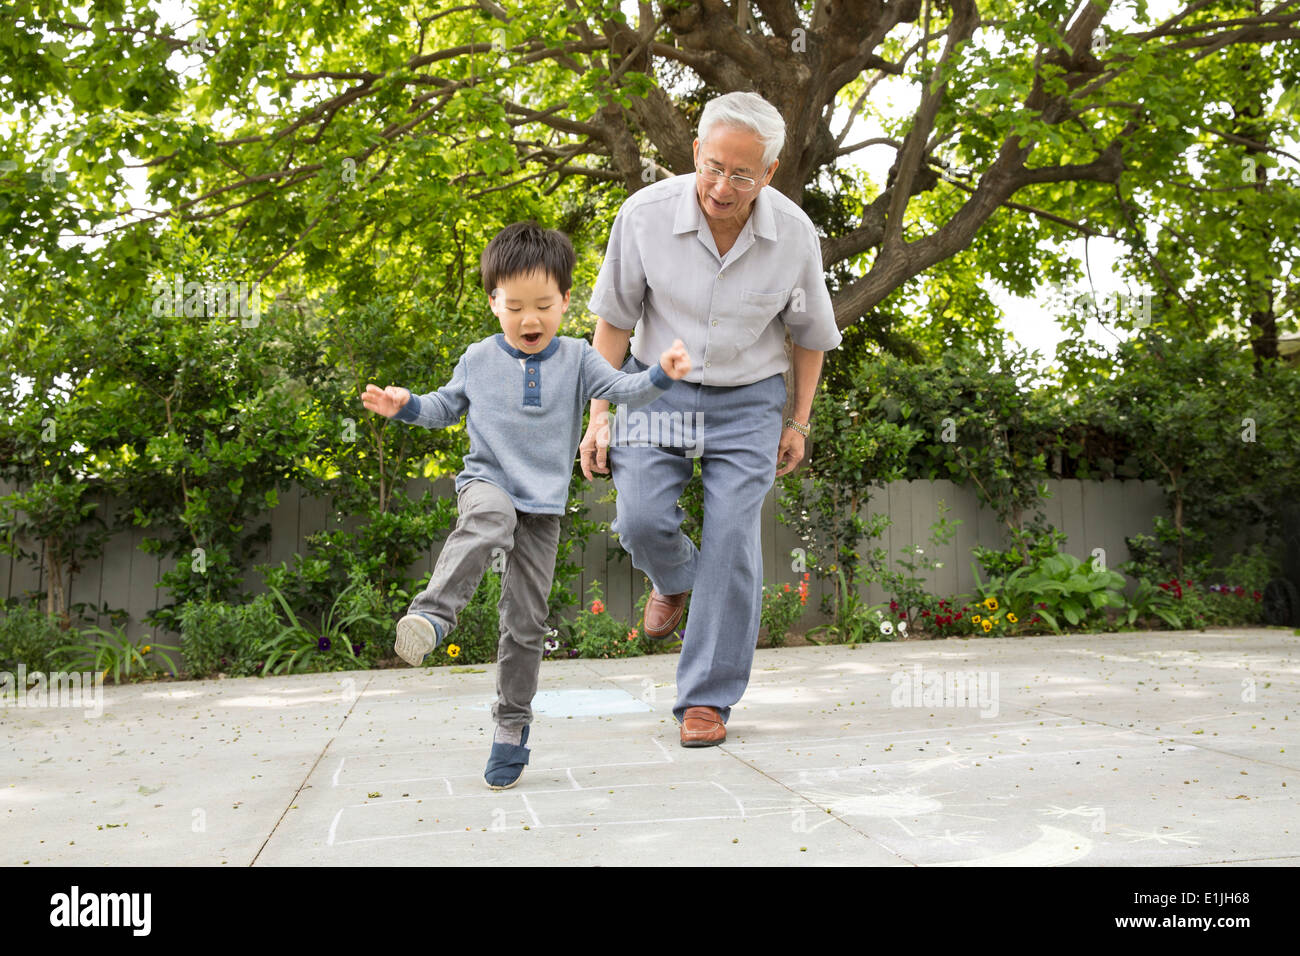 Grandfather playing hopscotch with grandson Stock Photo